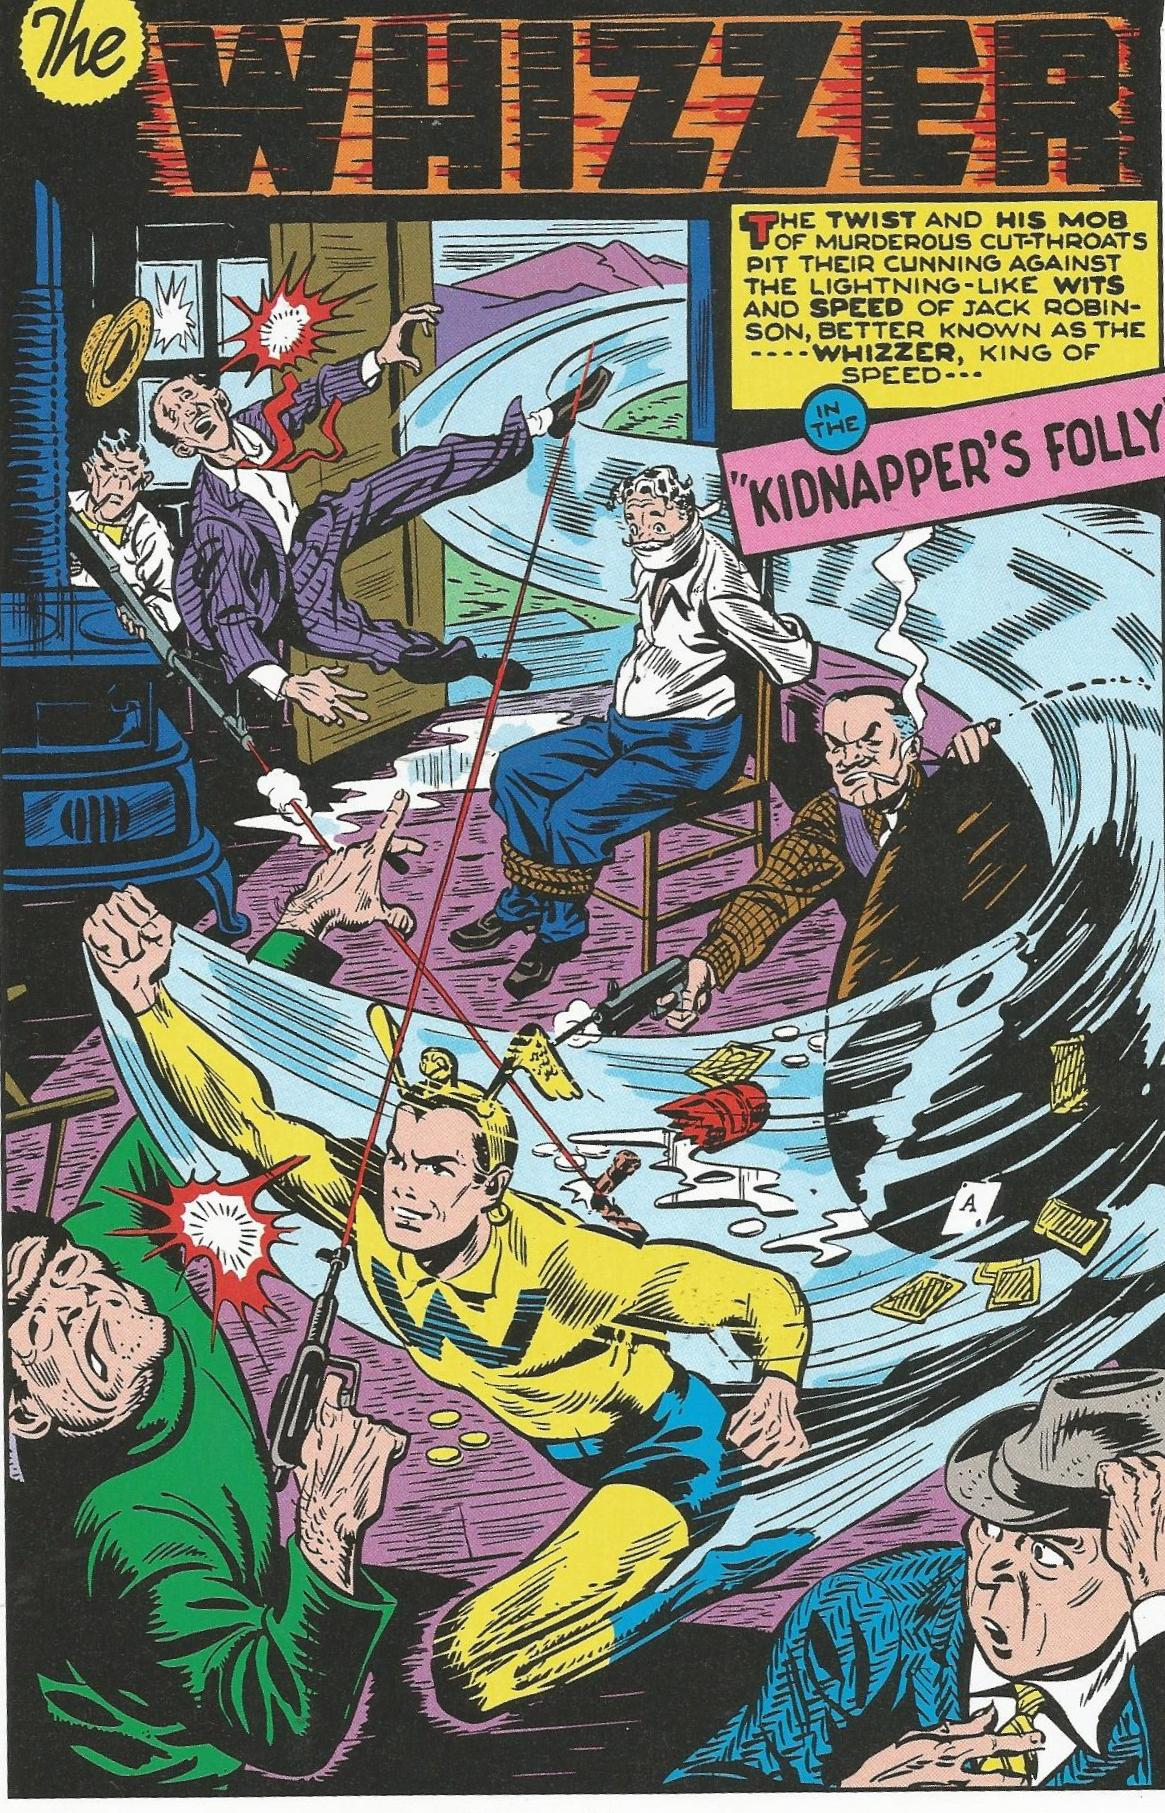 Marvel Masterworks Golden Age All-Winners 3 review